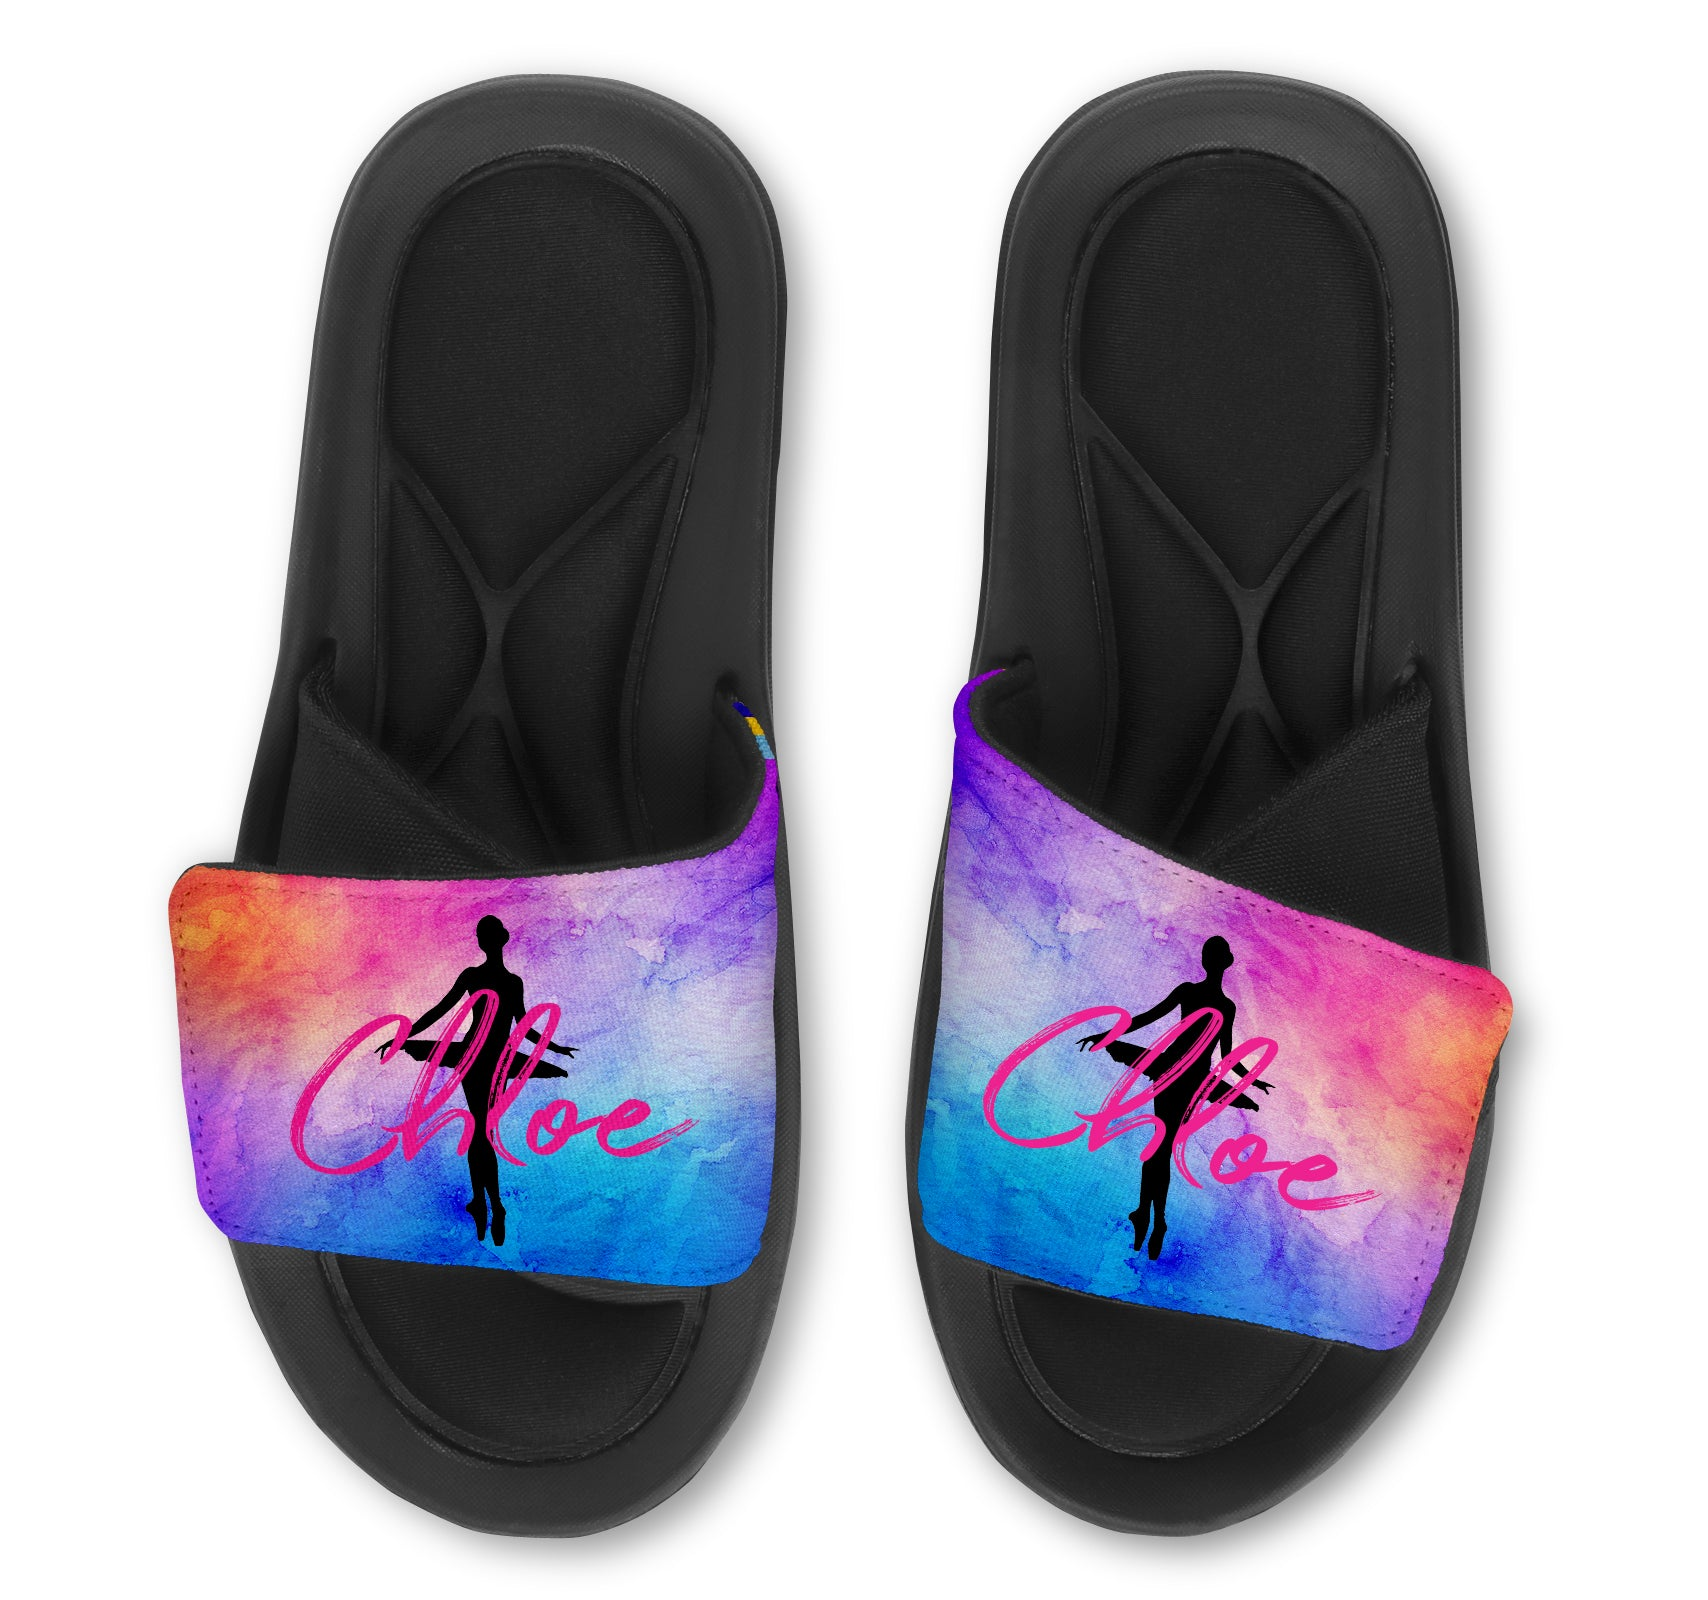 Ballerina Custom Slides / Sandals - Watercolor